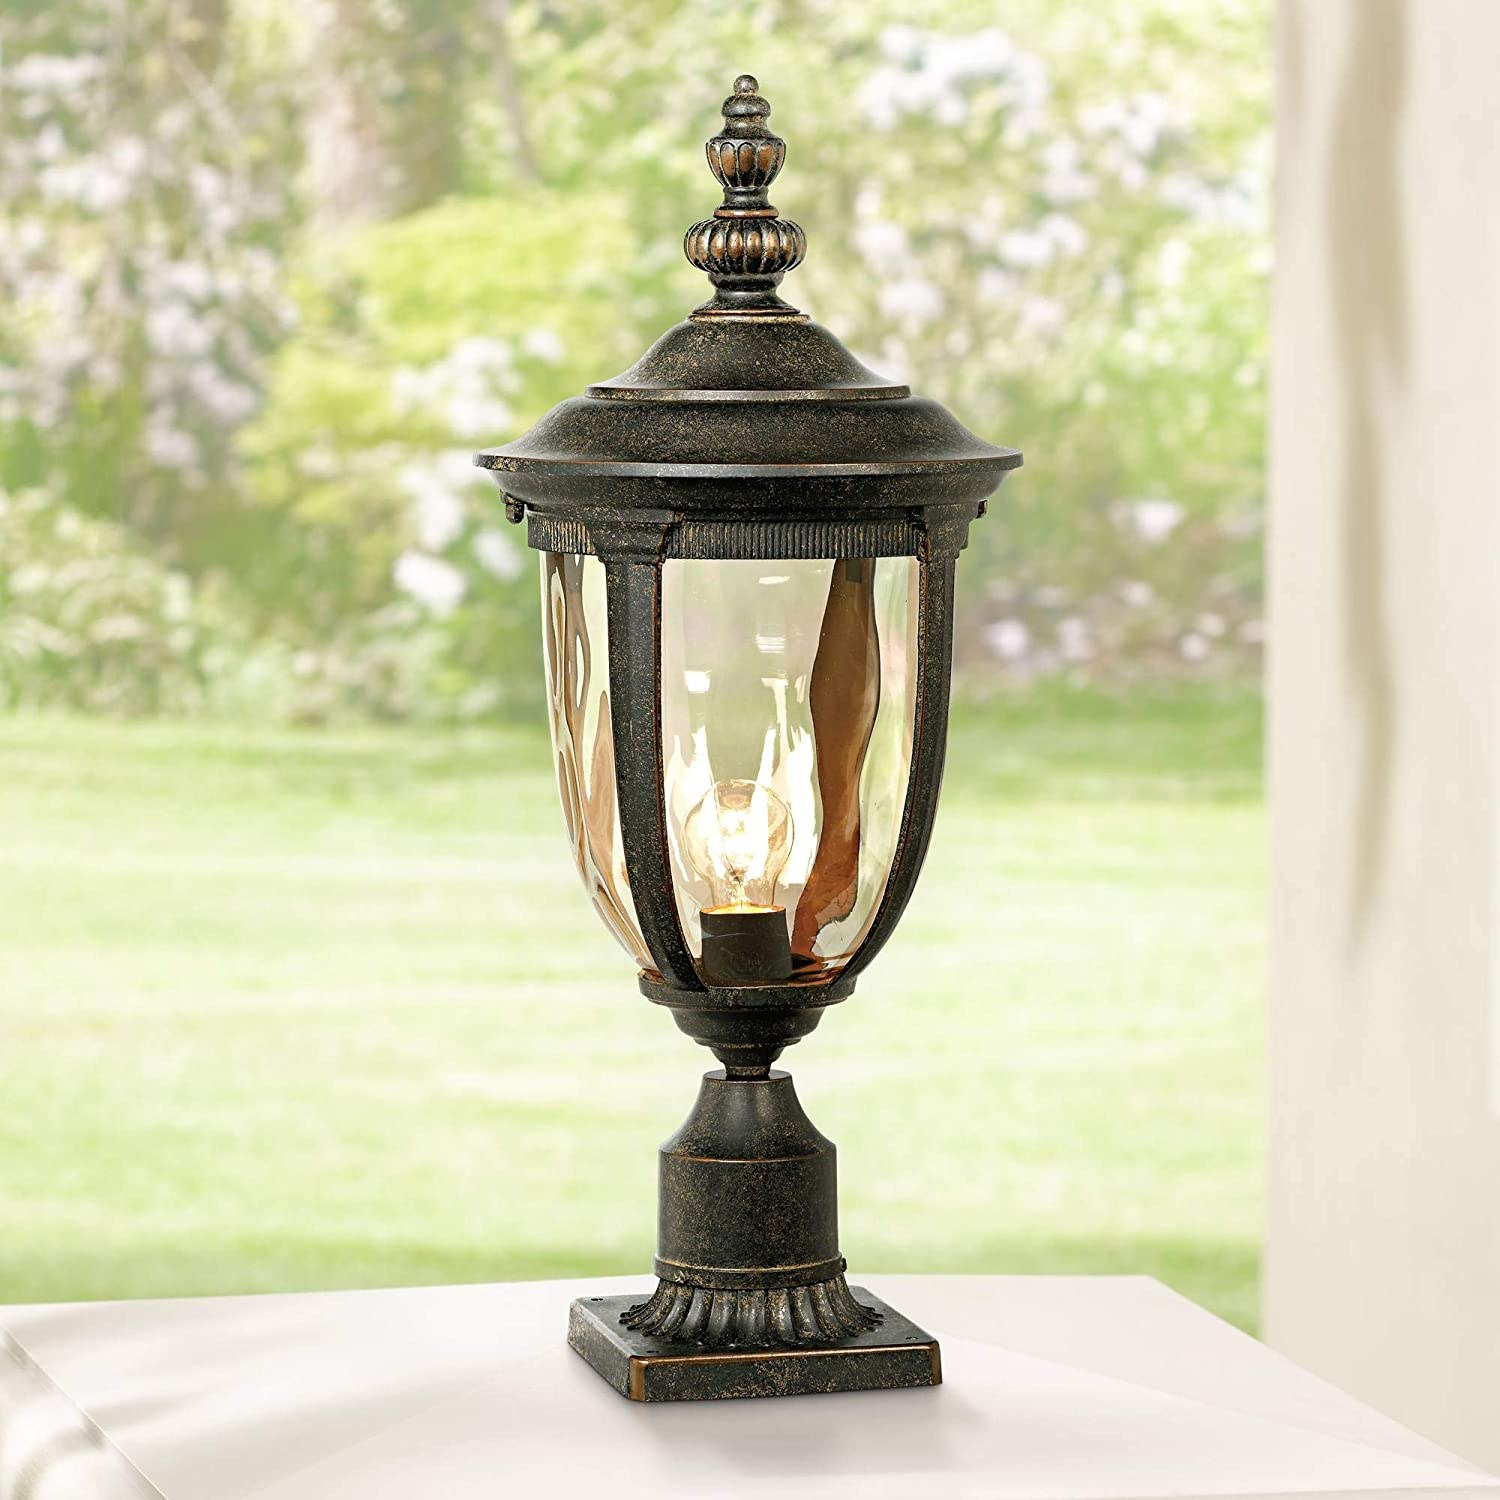 Bellagio vintage outdoor post light bronze 25 inch tall fixture with pier mount for deck patio entryway john timberland amazon com